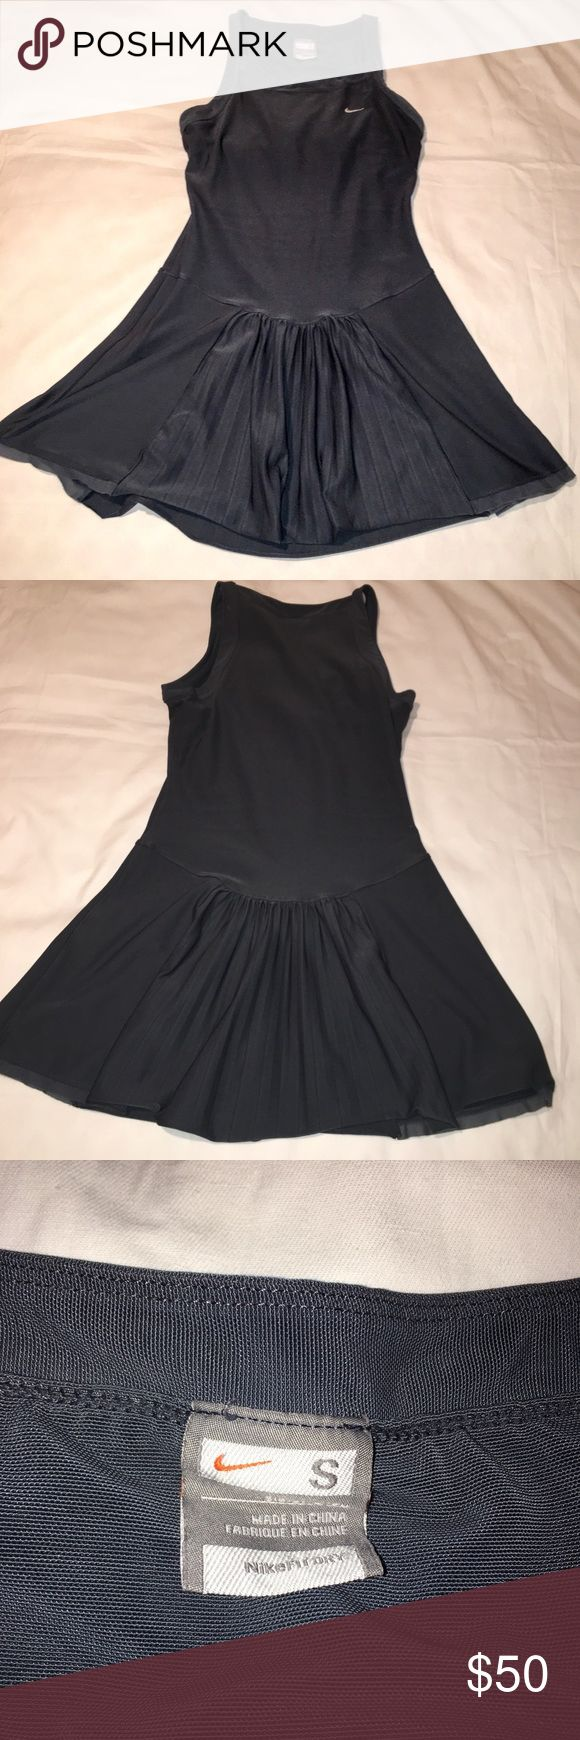 Nike Tennis Racerback Pleated Dress This Nike Tennis Dress is in GUC. There is a pin sized hole on the back as pictured. No other damage or fading. The dress features a racer back and front pleating. Nike Dresses